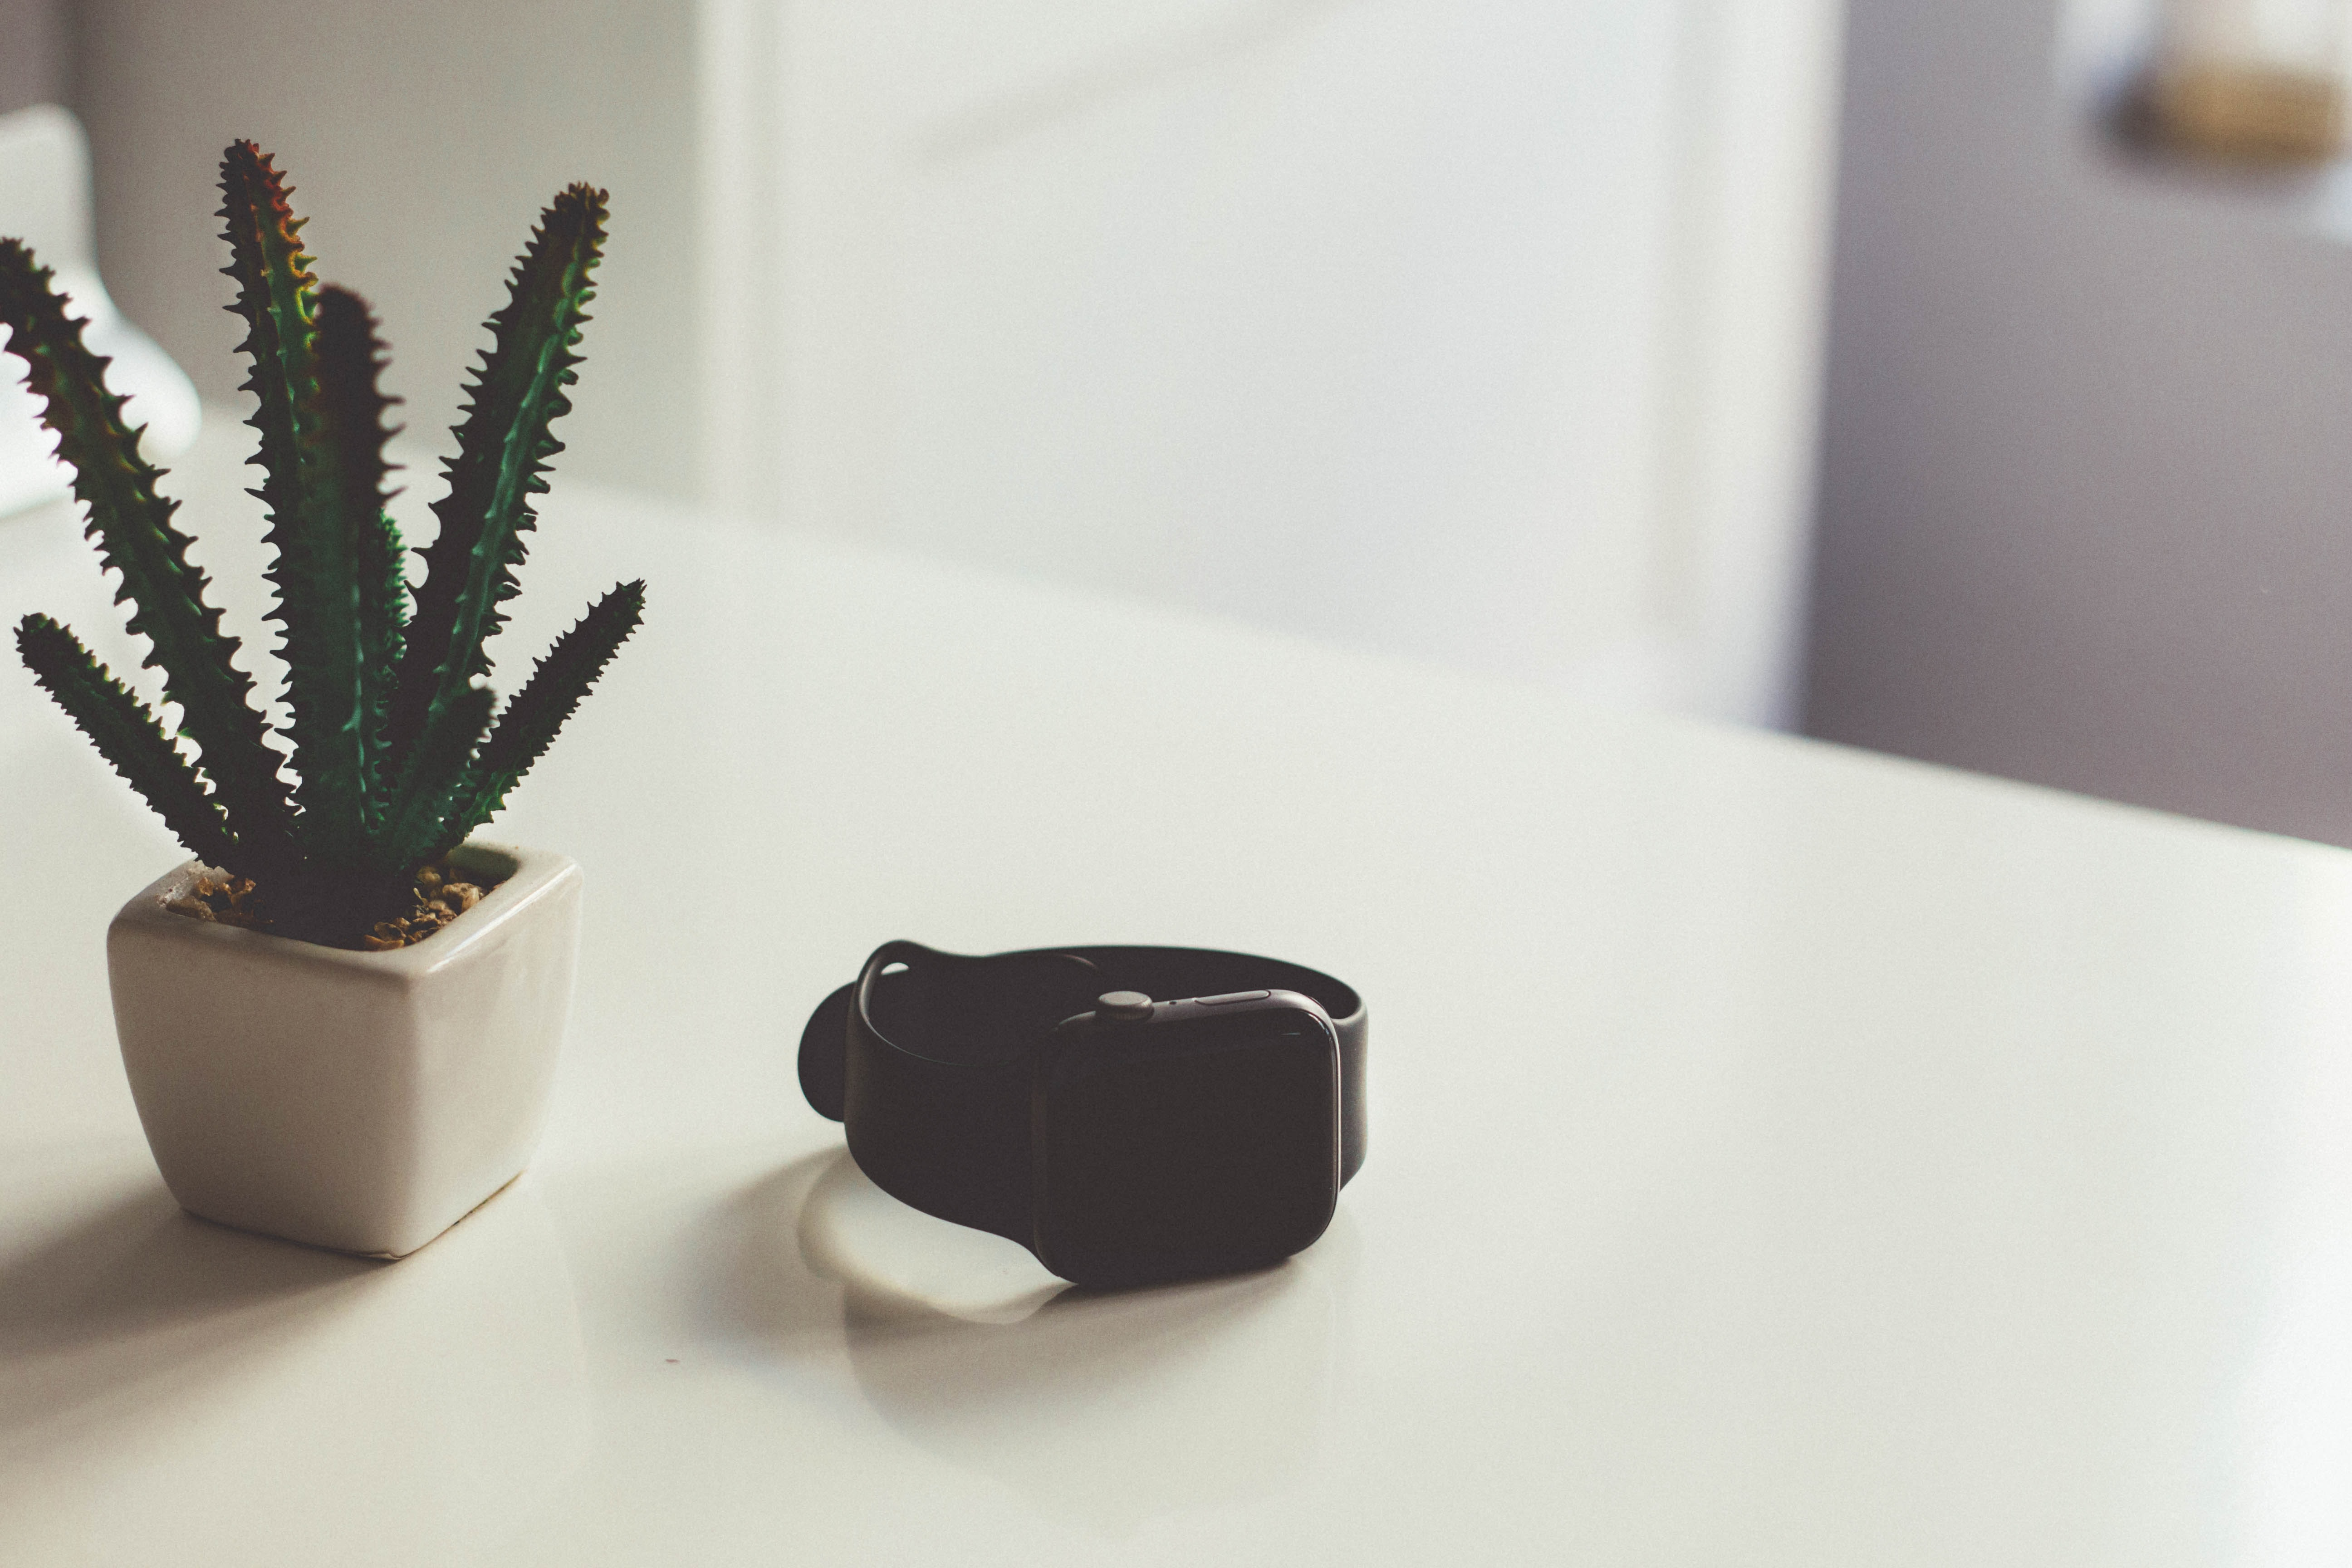 turned-off Apple Watch beside cactus plant on table